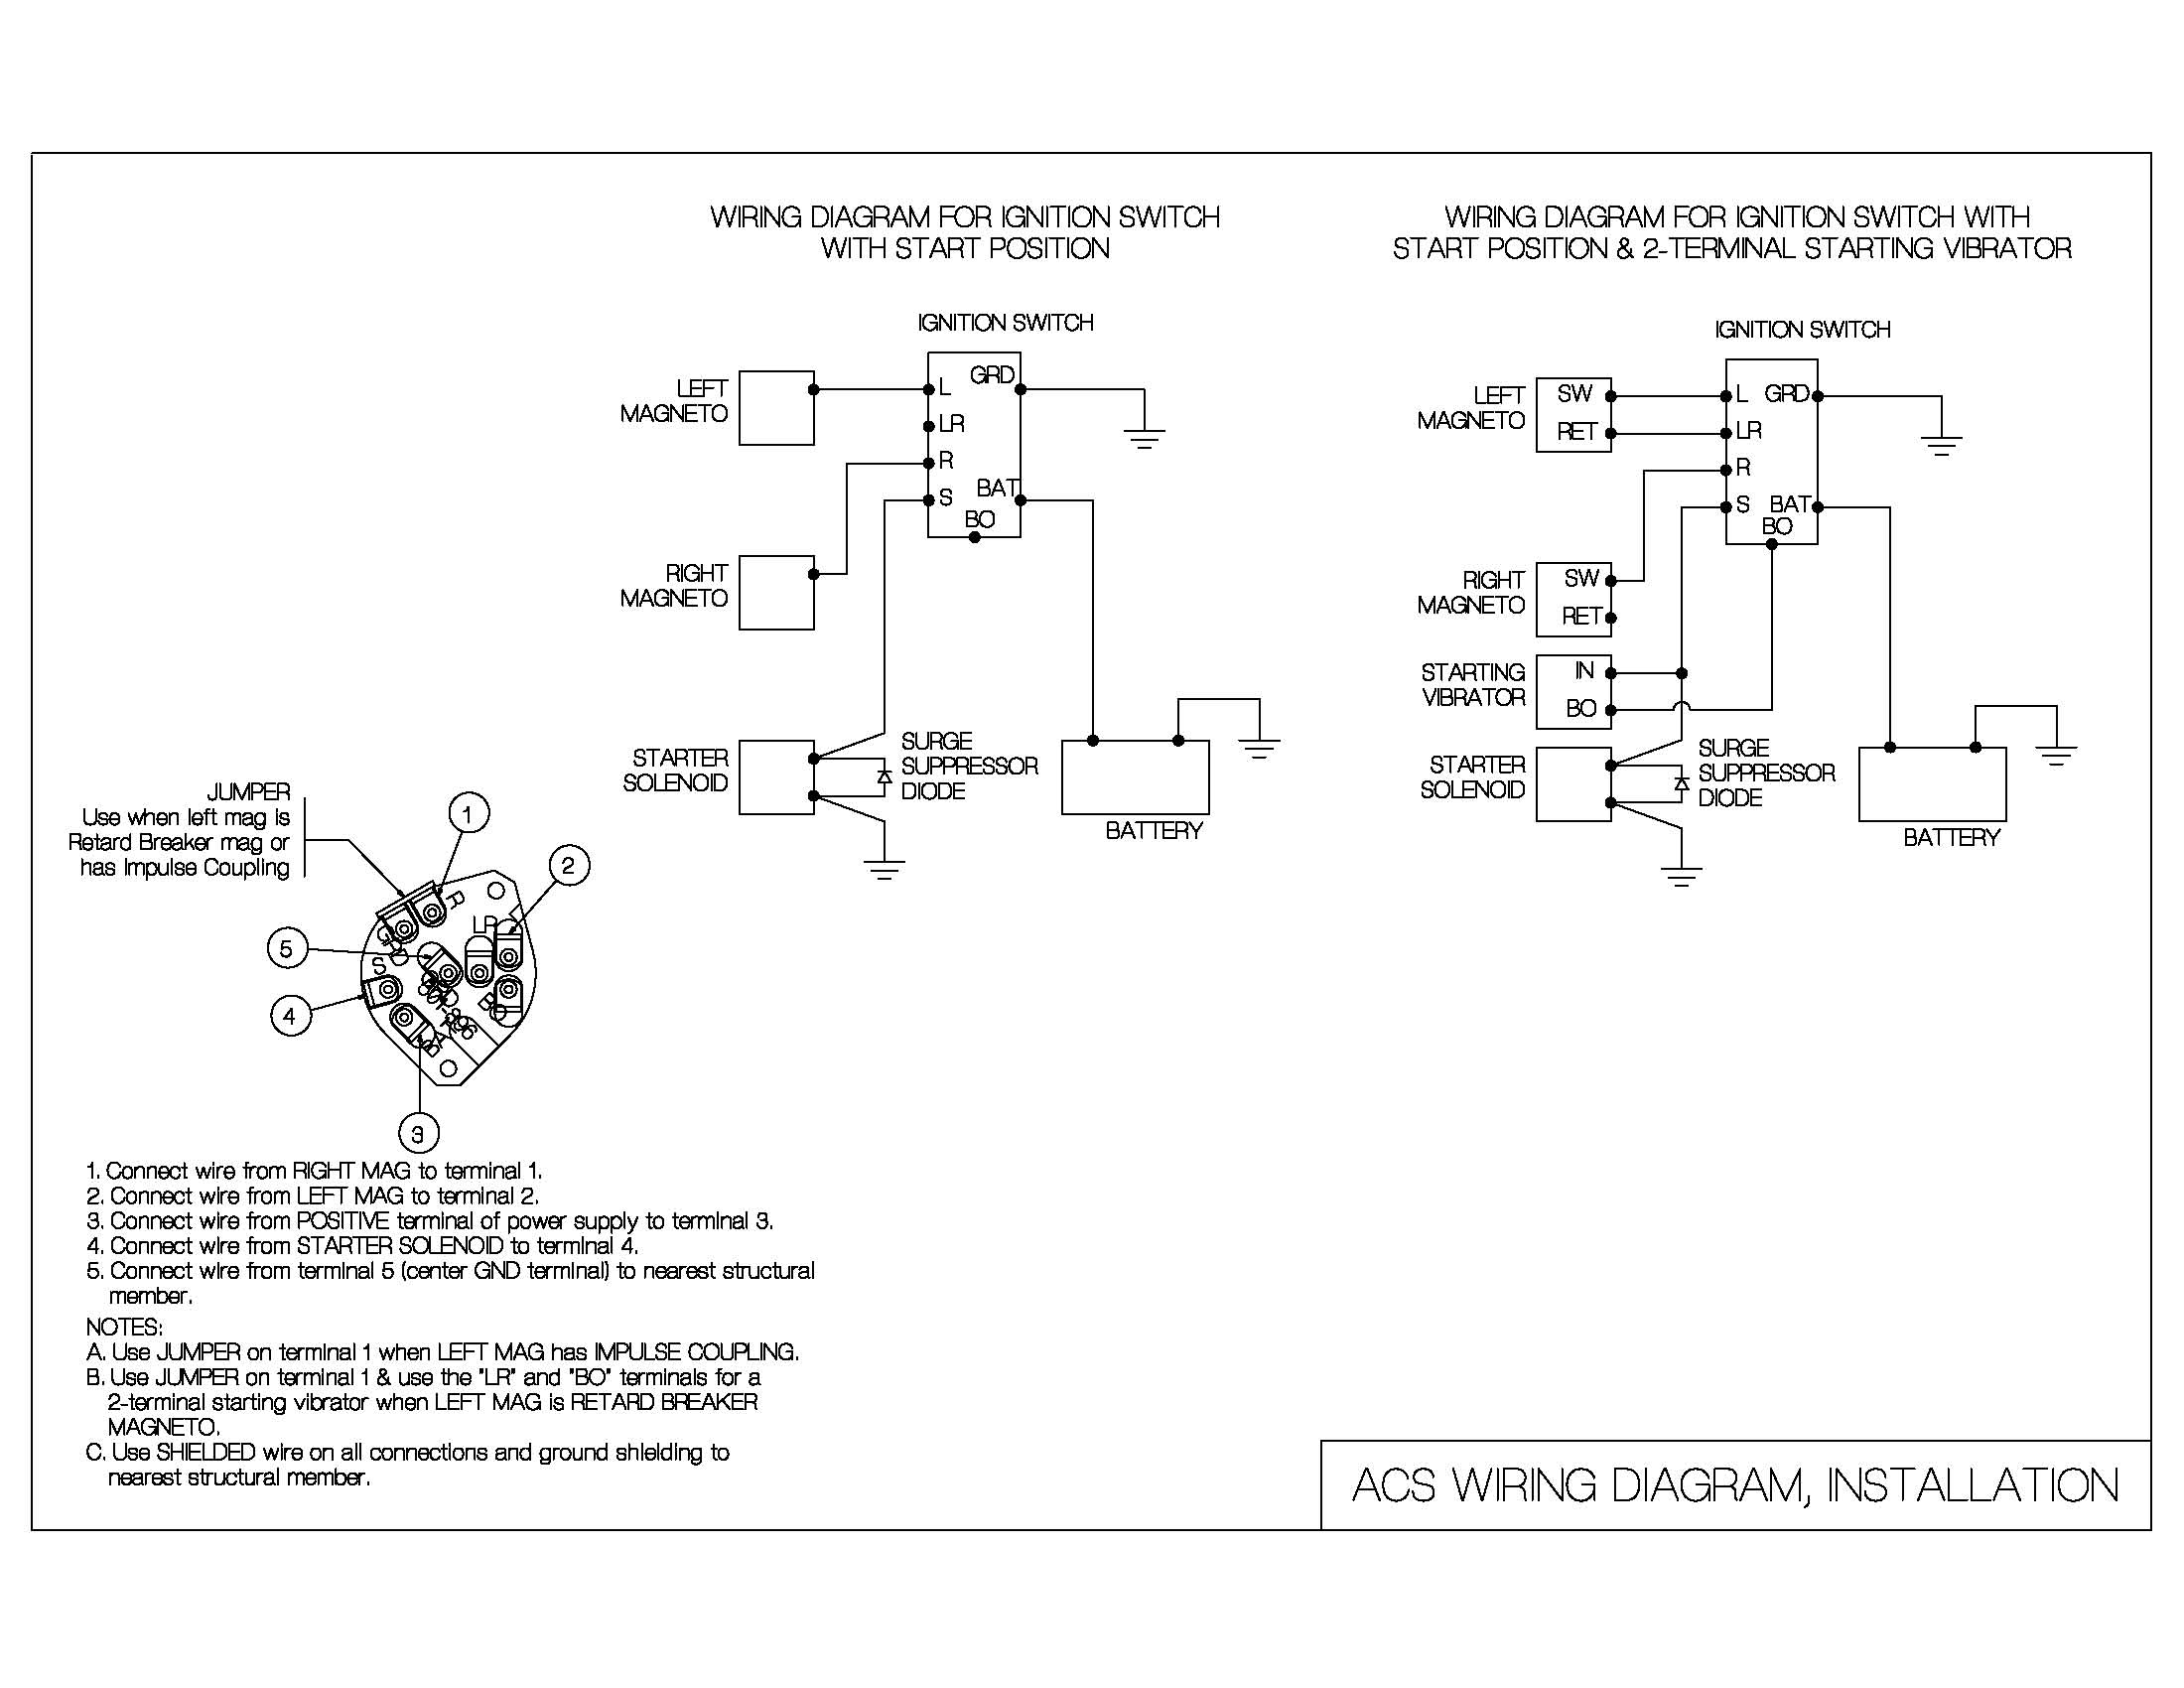 Wiring Diagram ignition switch wiring diagram acs products company aircraft ignition switch wiring diagram at readyjetset.co